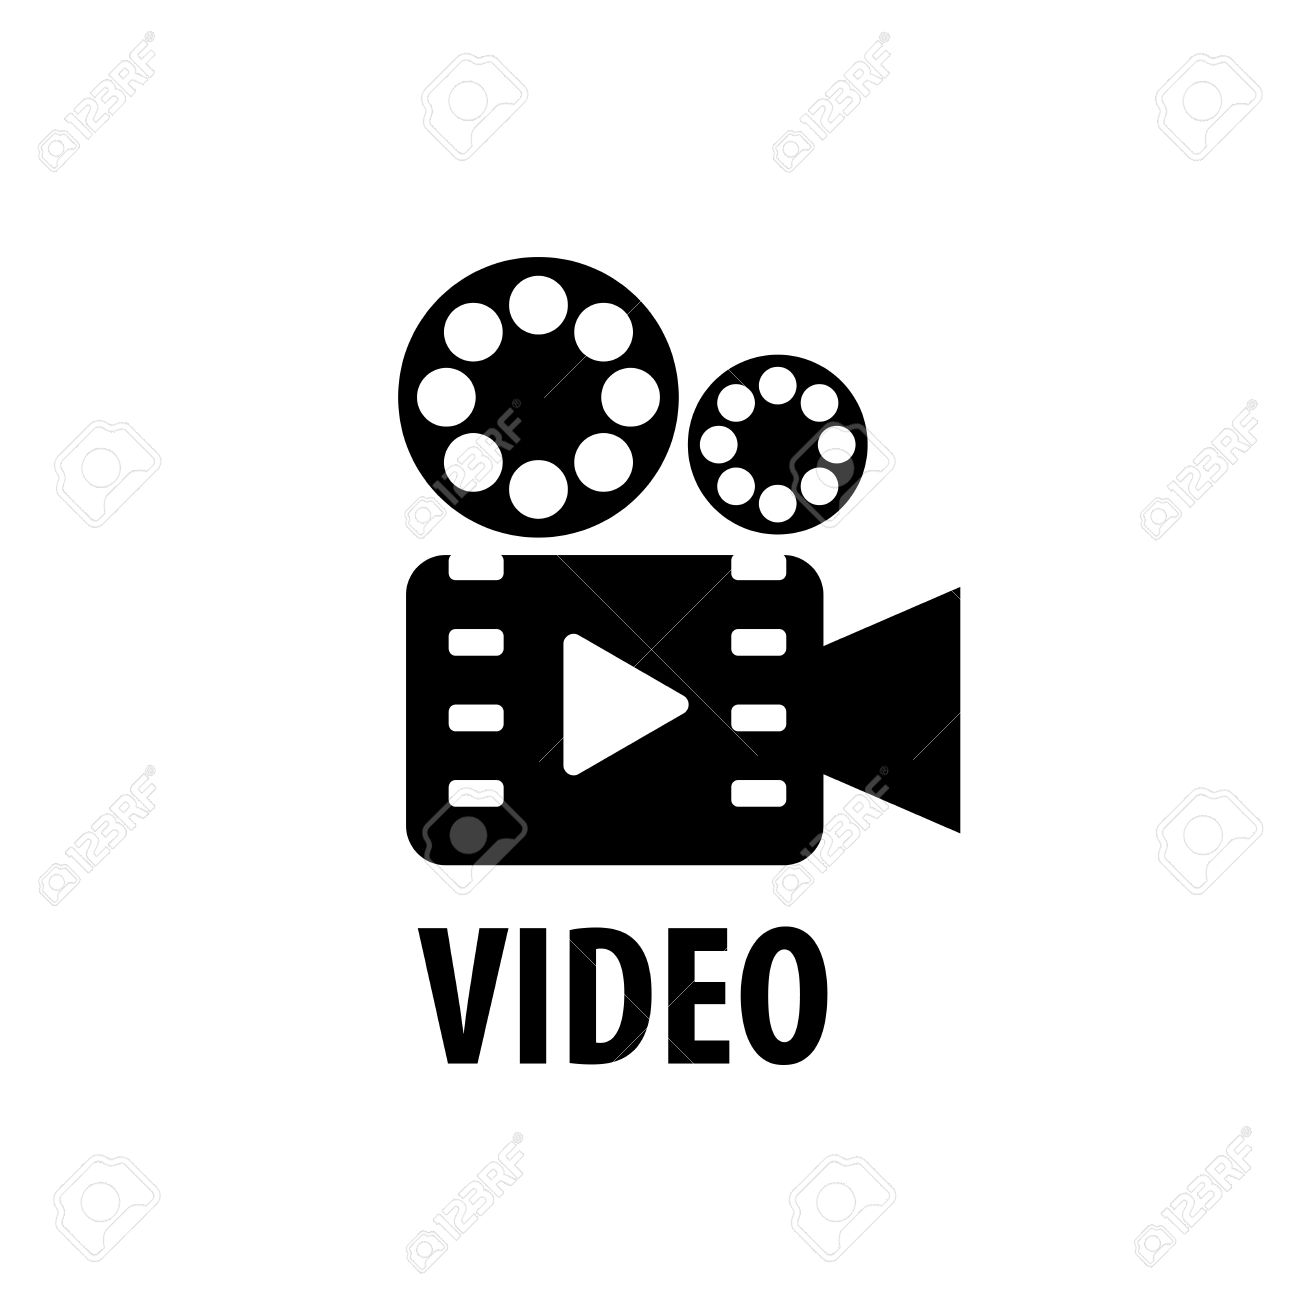 video camera logo clipart clipground